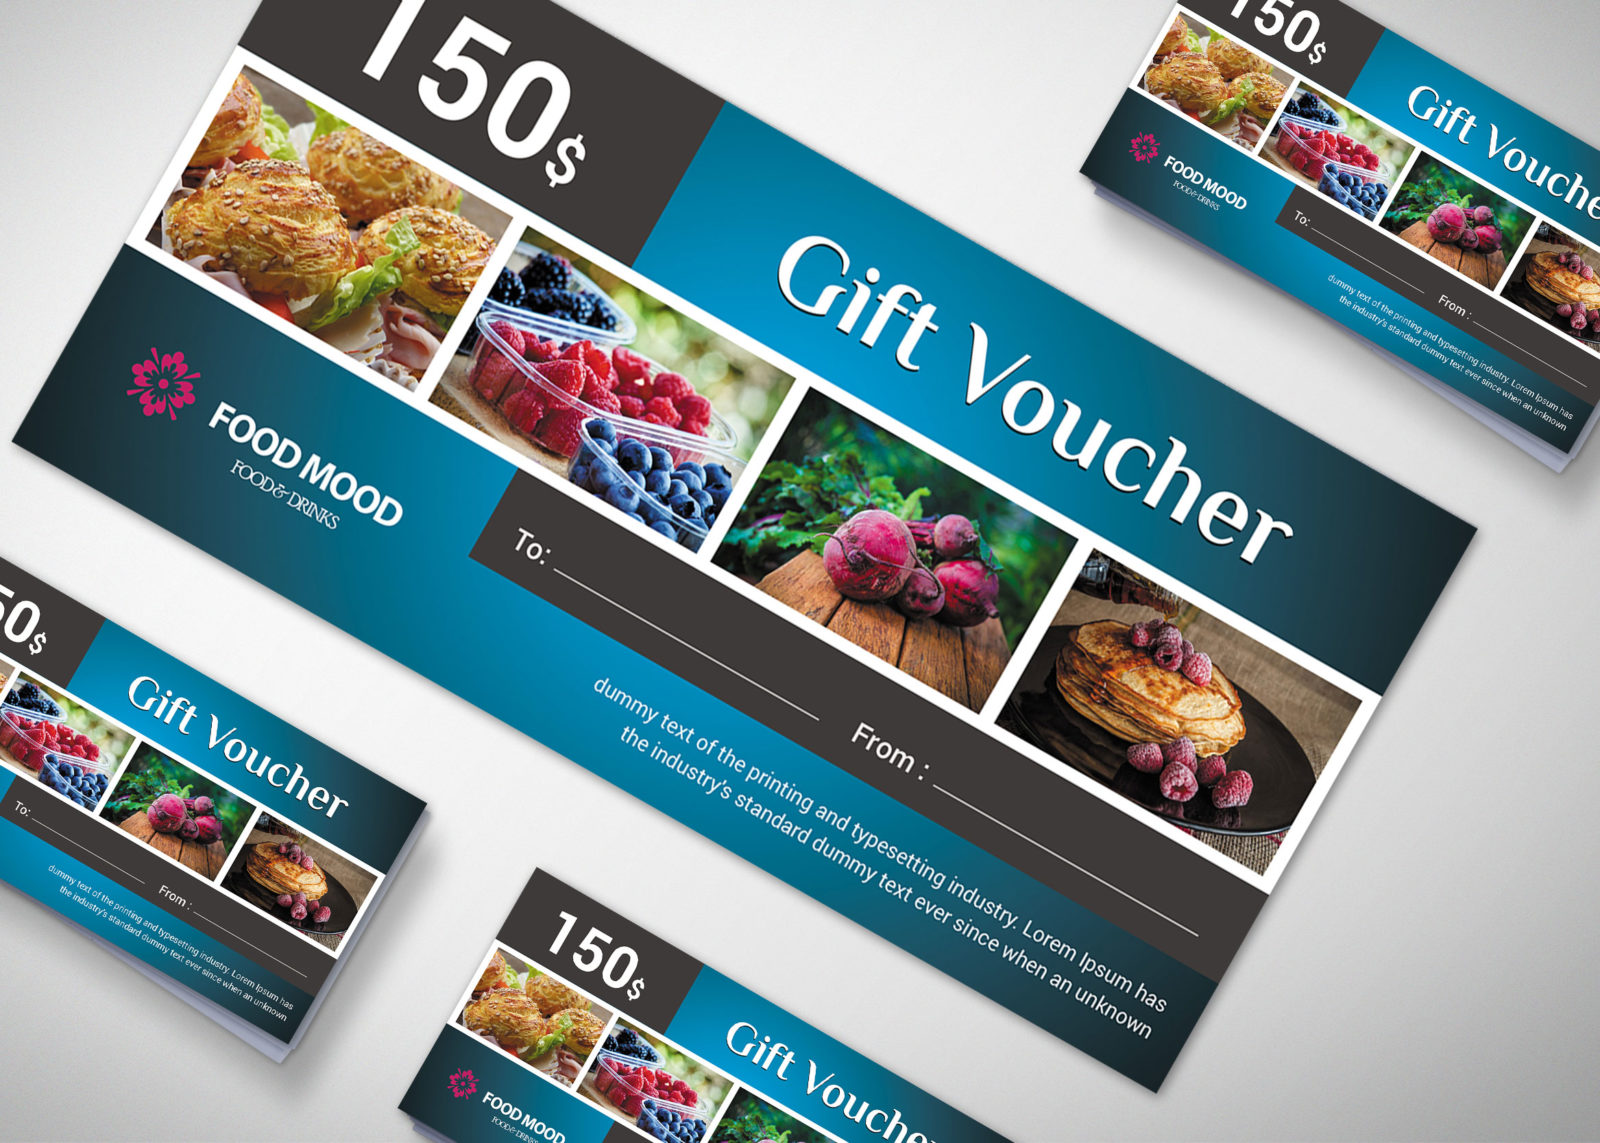 Restaurant Gift Voucher Design Template